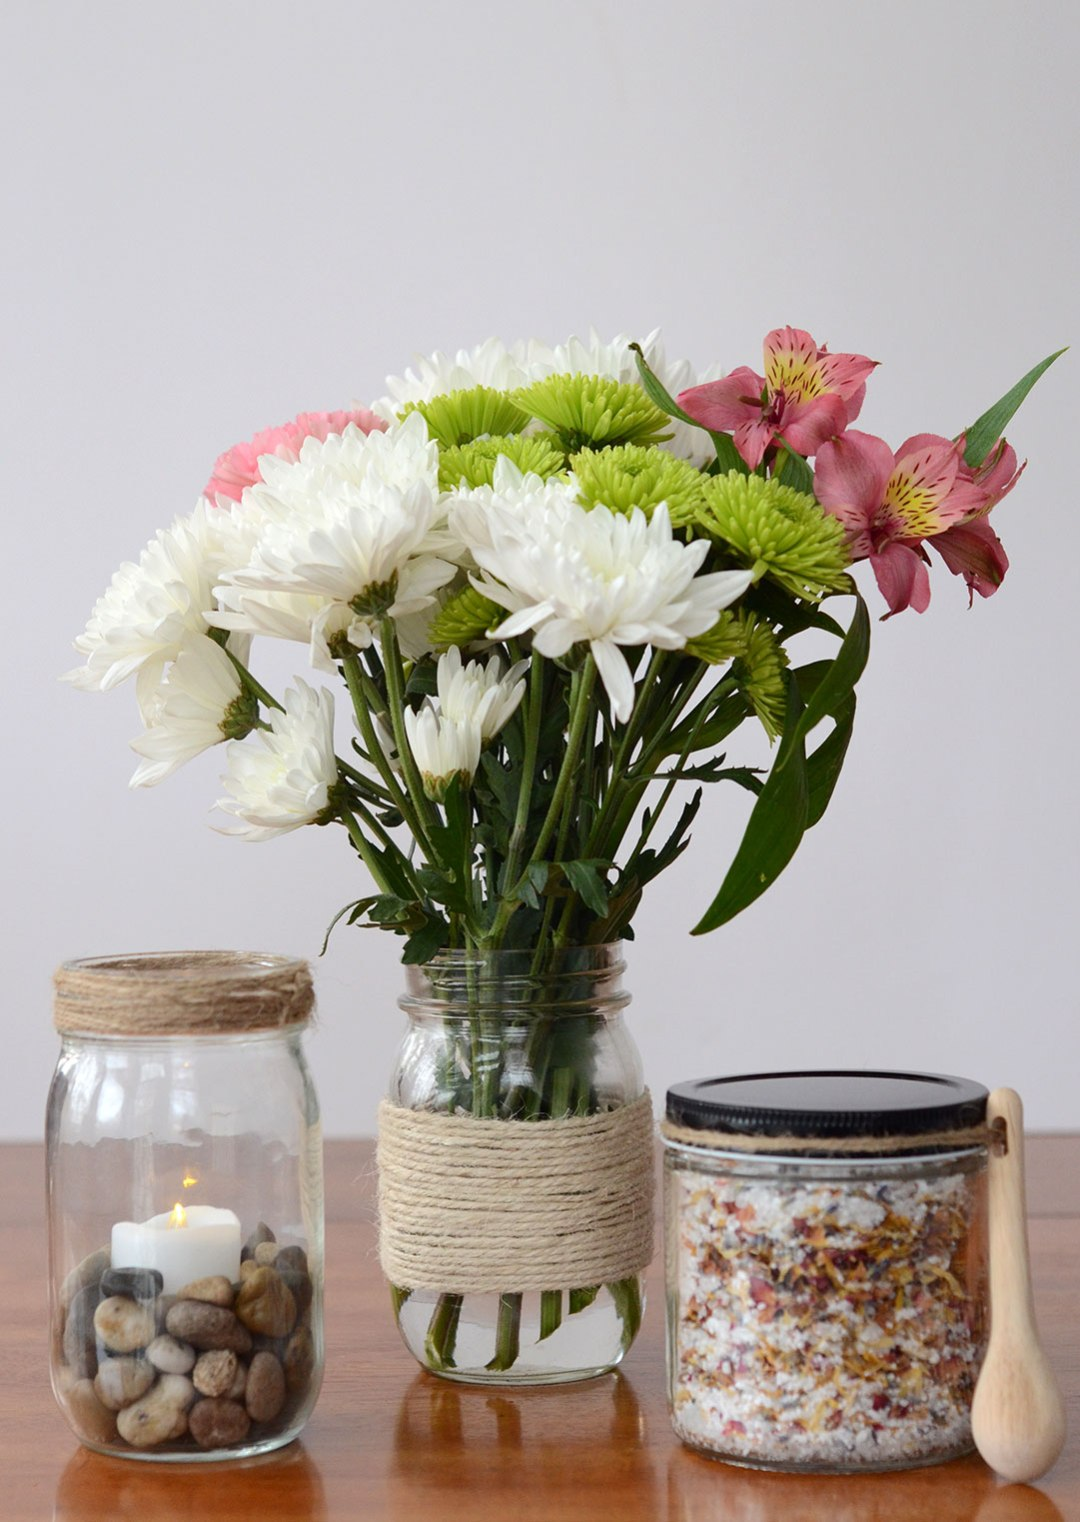 Once you've used all your Wildly Organic coconut oil, don't toss that jar! Wildly Organic uses high quality glass to store our products, which can be recycled, but also upcycled — even better! Learn 3 simple and cheap ways to upcycle glass jars. Better for your pocketbook and for the planet!